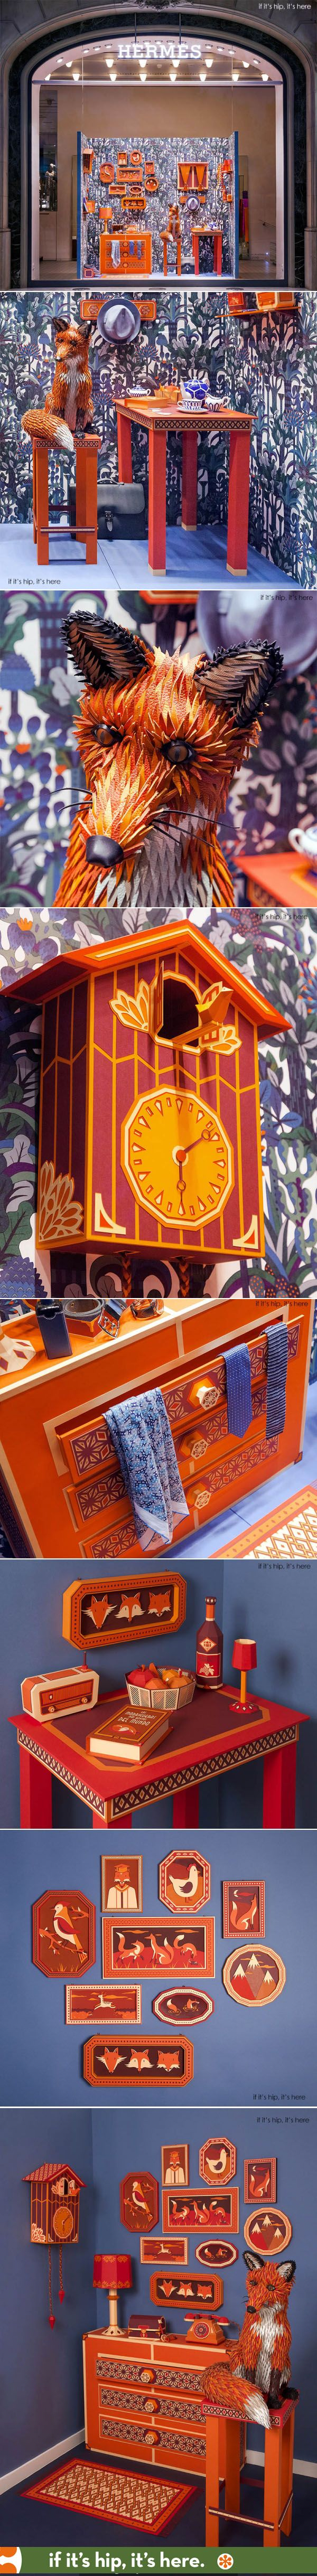 This Hermes window display of a Fox Den was crafted entirely out of paper with a leather fox. More at http://www.ifitshipitshere.com/hermes-window-display-zim-zou-fox-den-paper-leather/